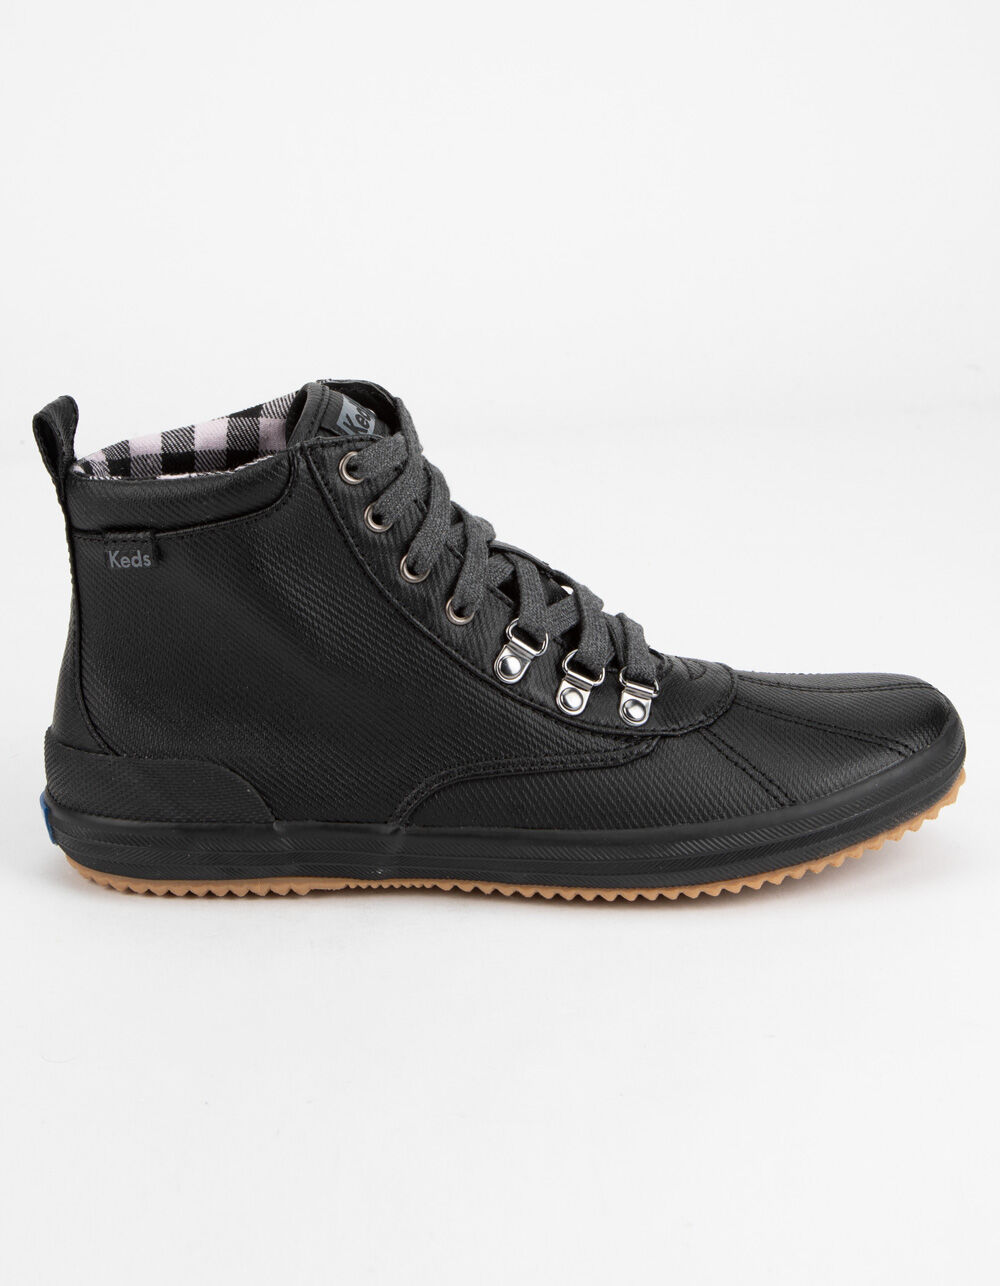 KEDS Scout Water-Resistant Black Boots